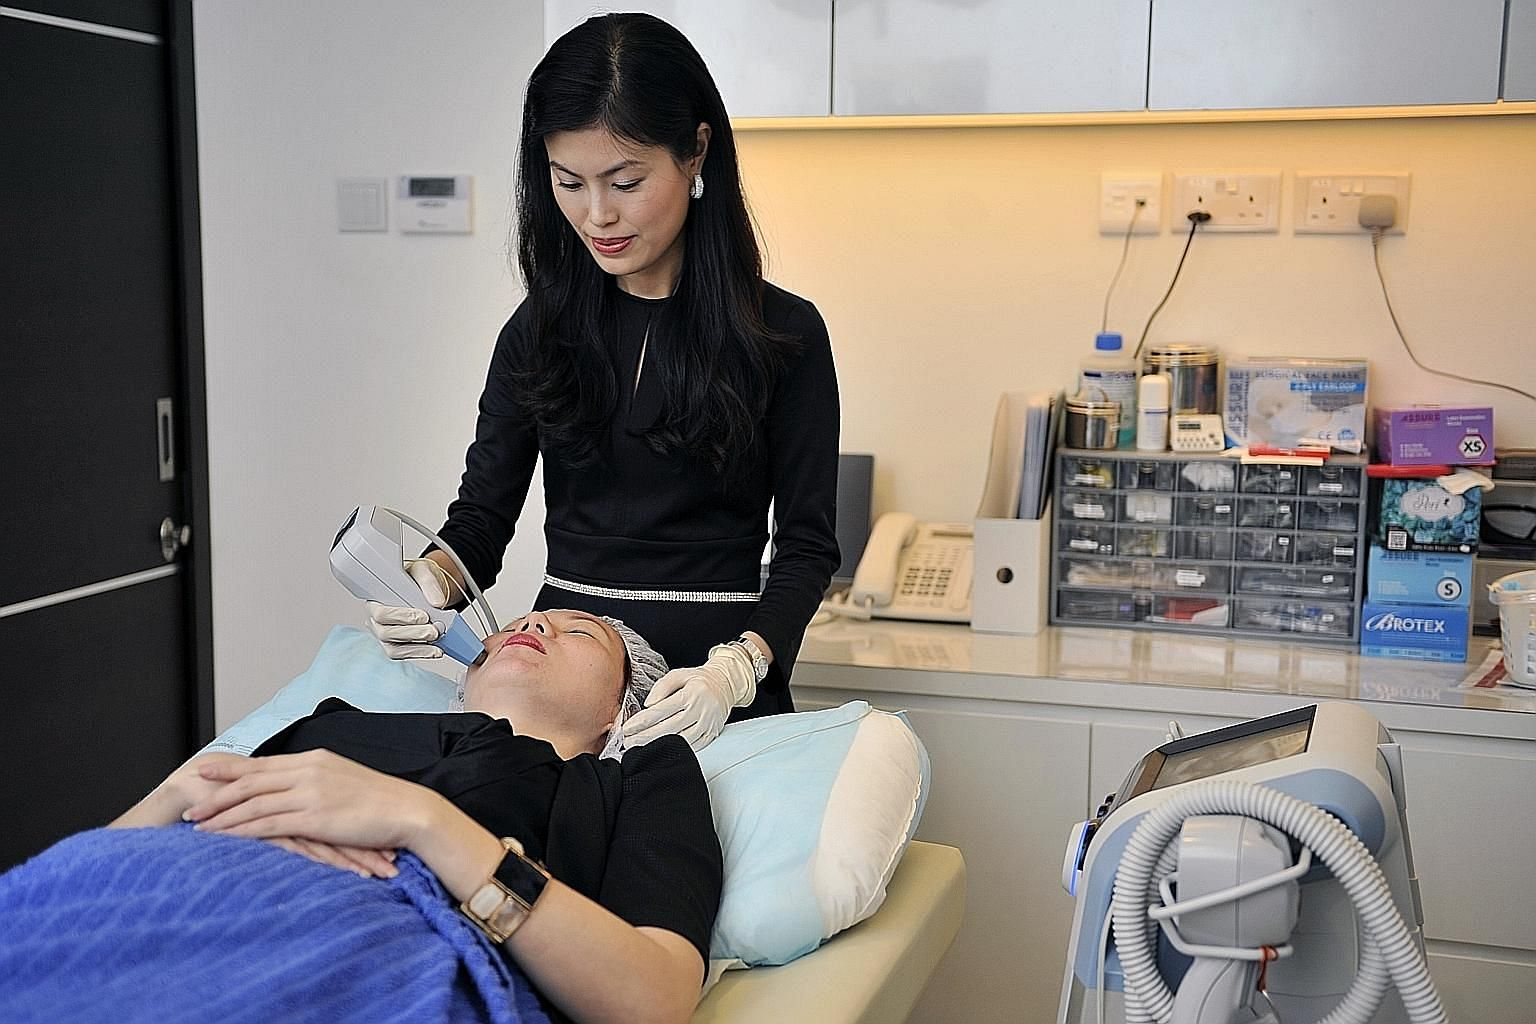 Laser resurfacing uses laser to remove the outermost layers of skin to improve appearance.